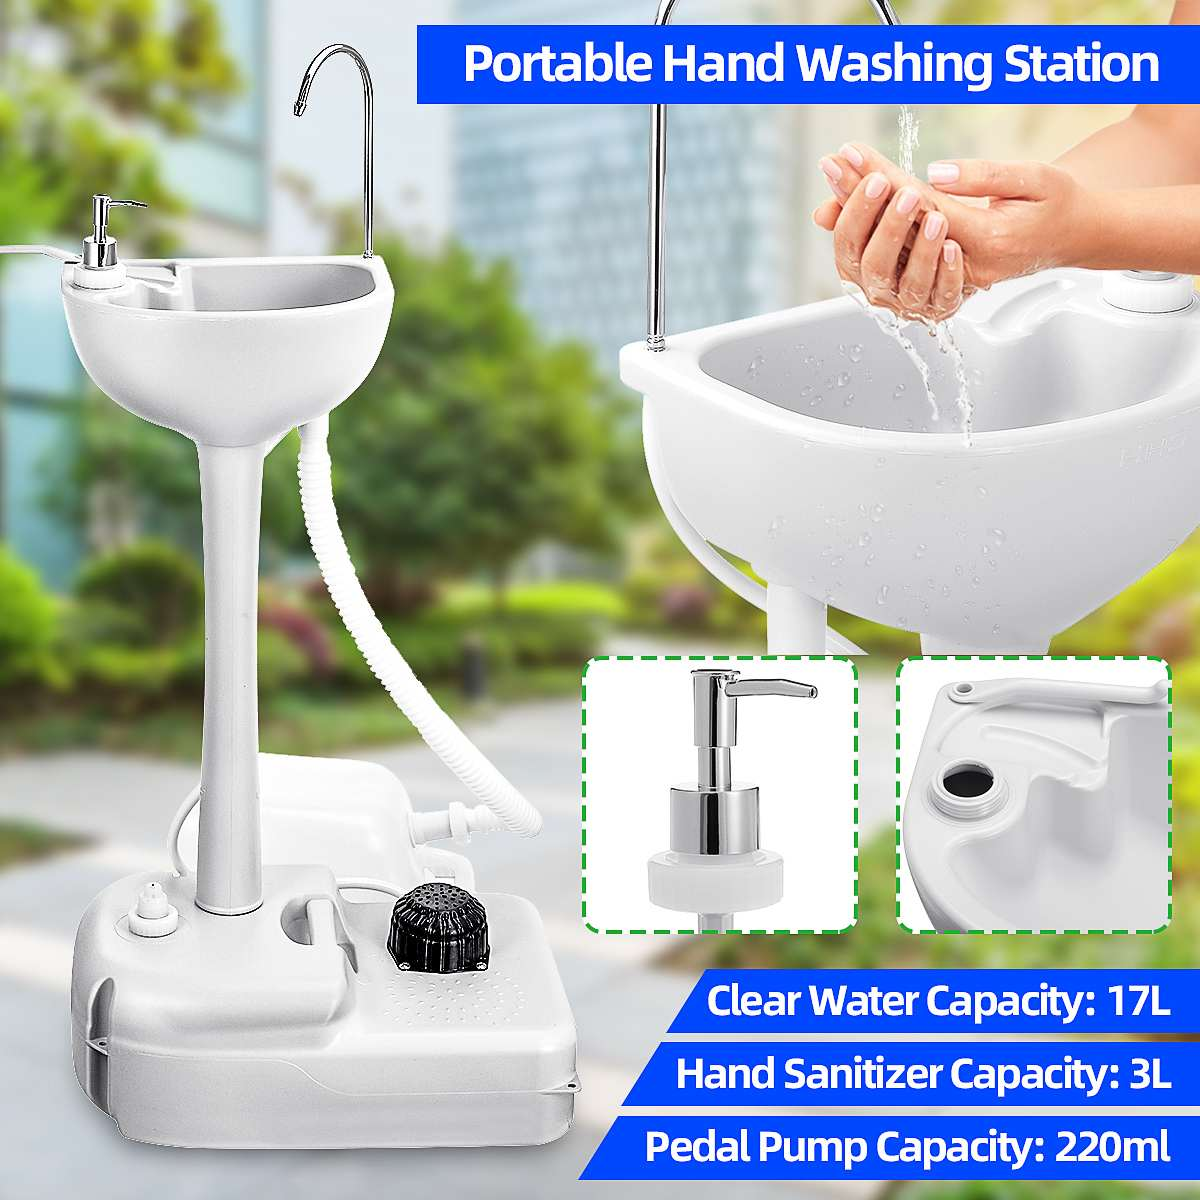 washing table portable washing station mobile freestanding hand wash sink for camping caravans outdoor activities